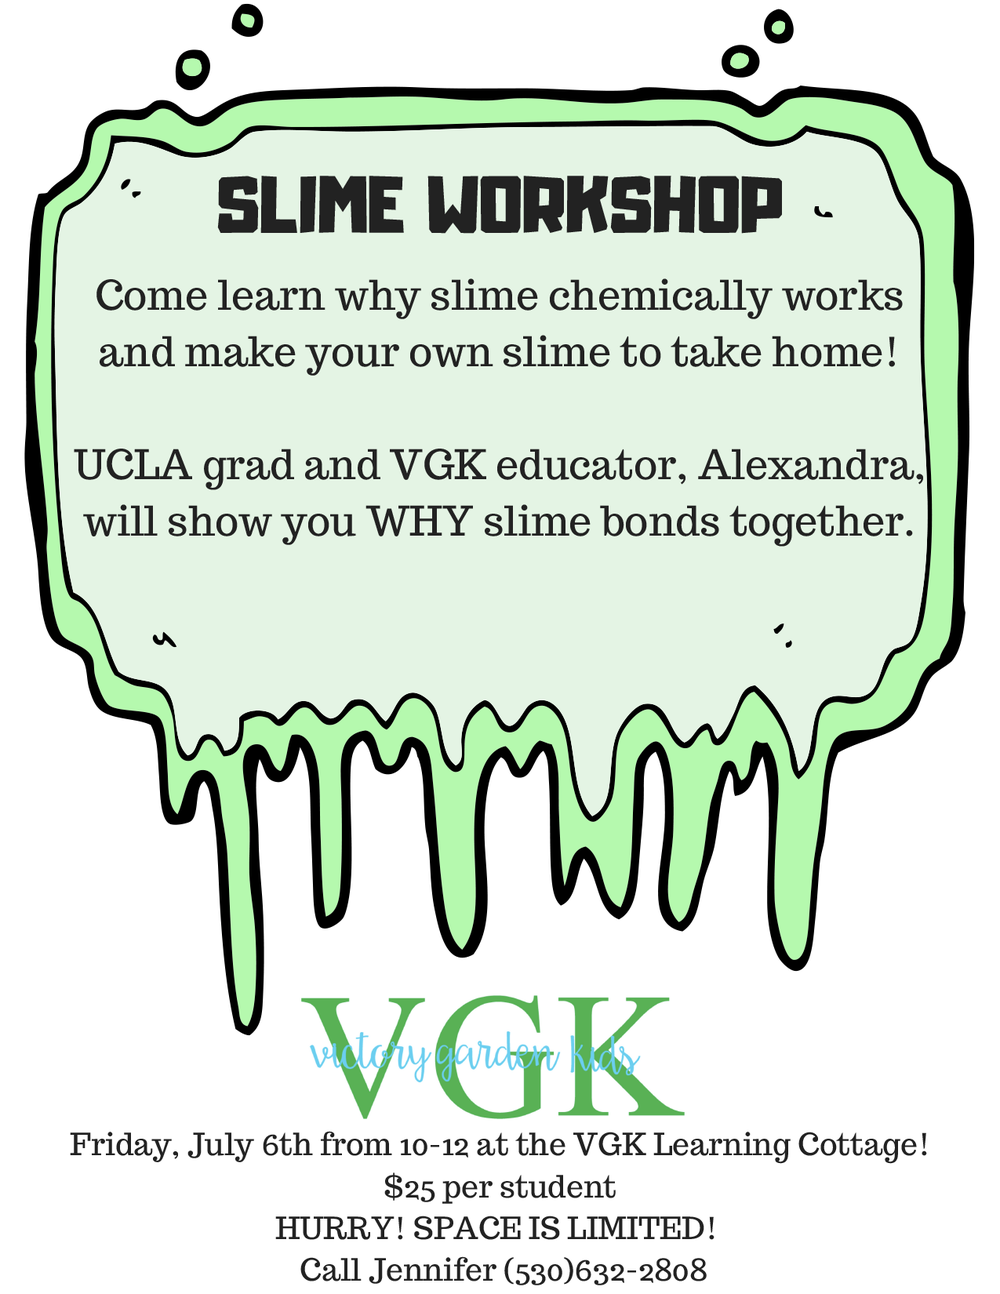 SLIME-WORKSHOP.png